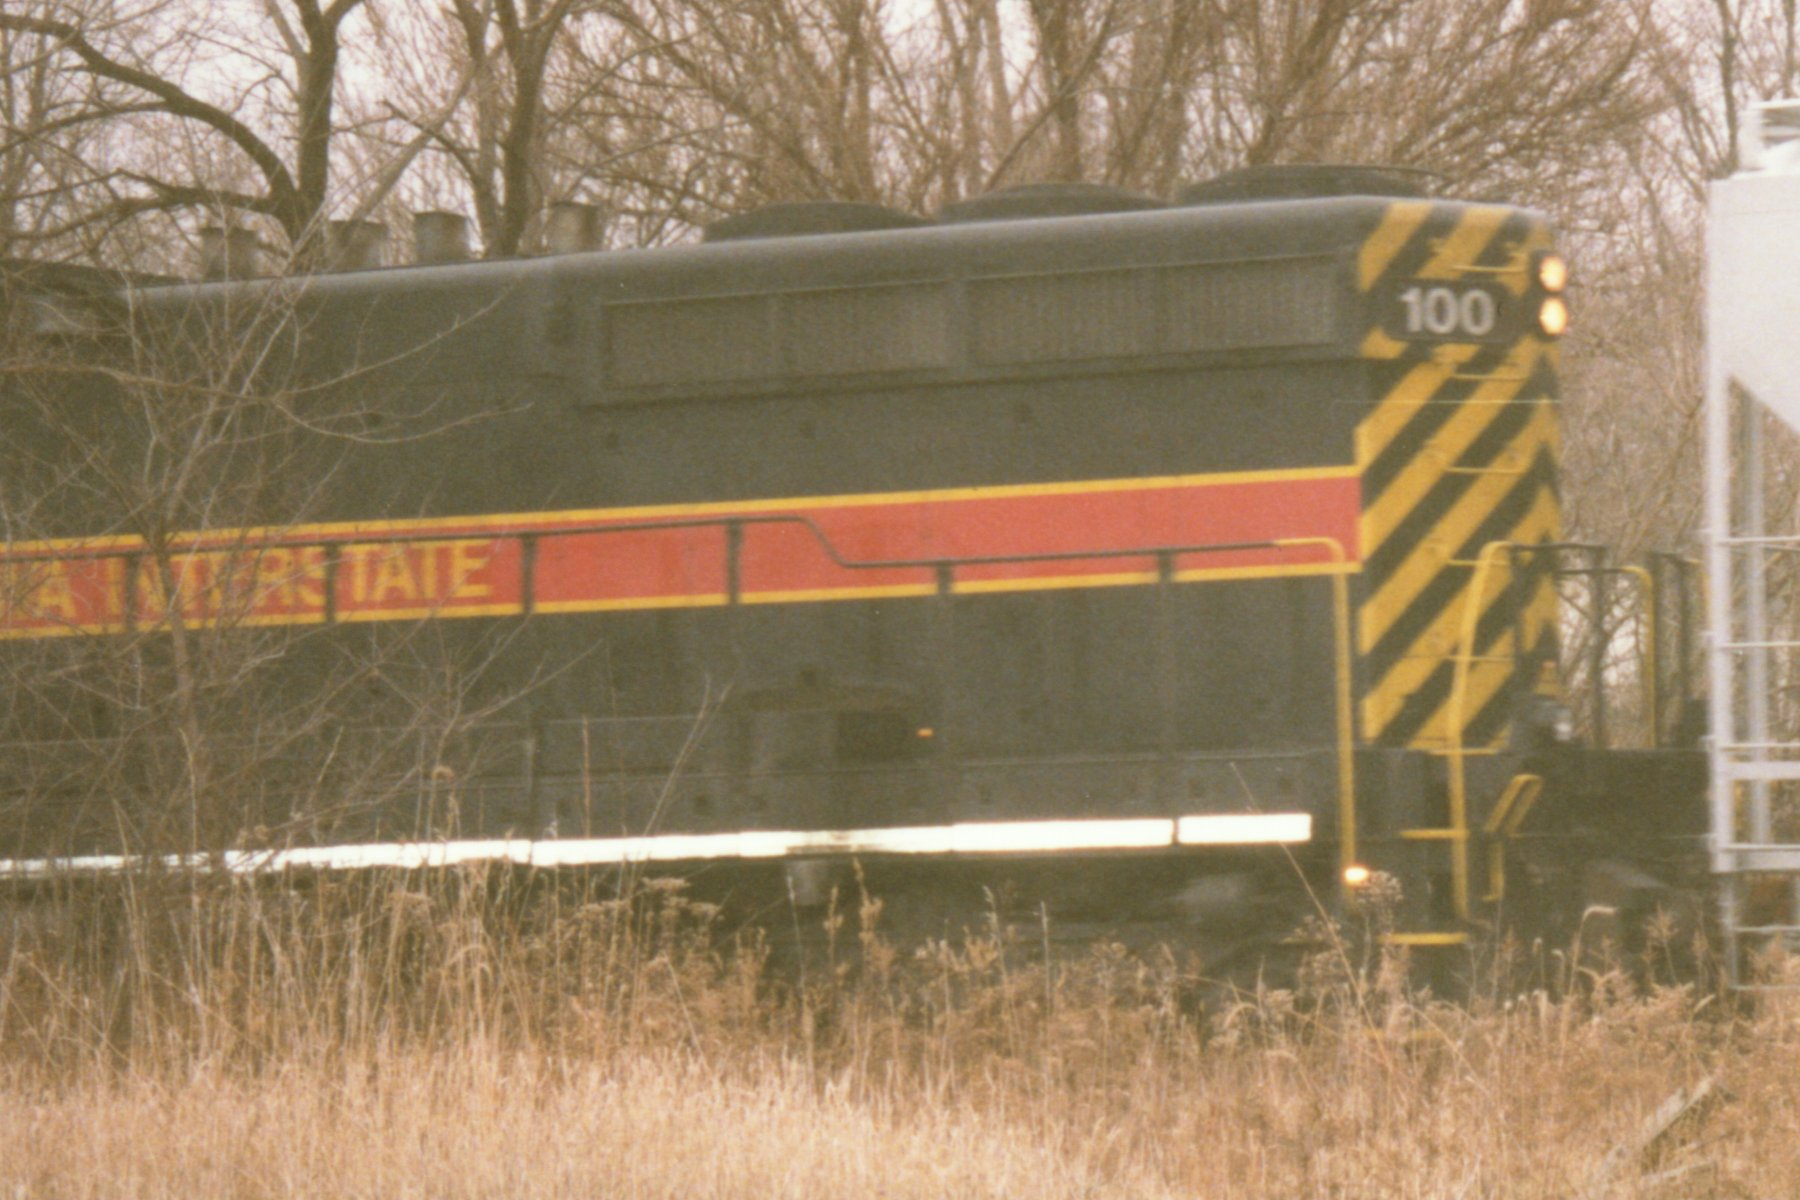 IAIS 100 at Altoona, IA on 30-Nov-1996